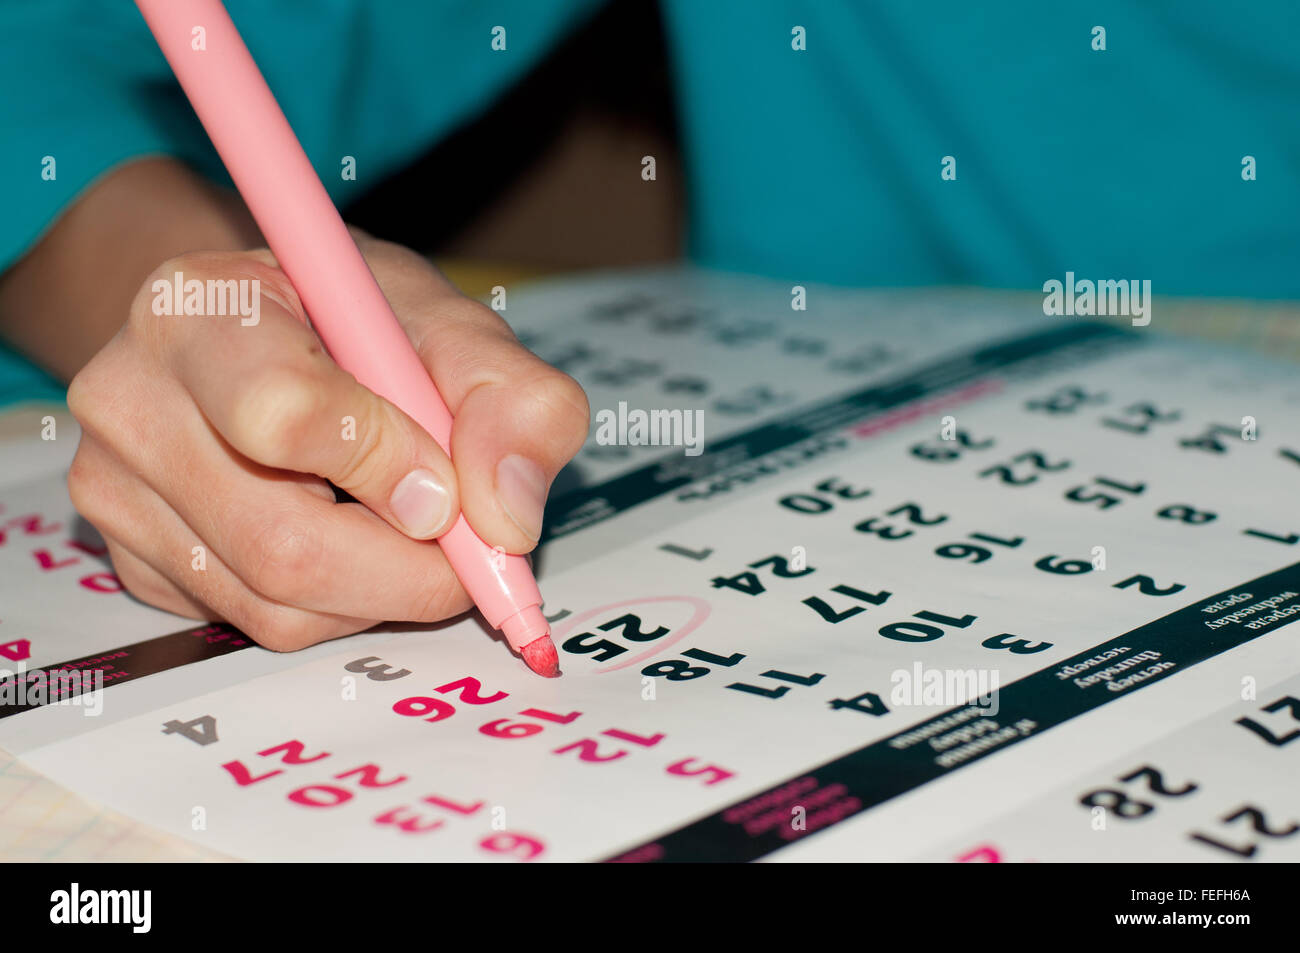 Close-up photo of calendar with a datum circled by kid's hand with a pink marker, concept of time management - Stock Image